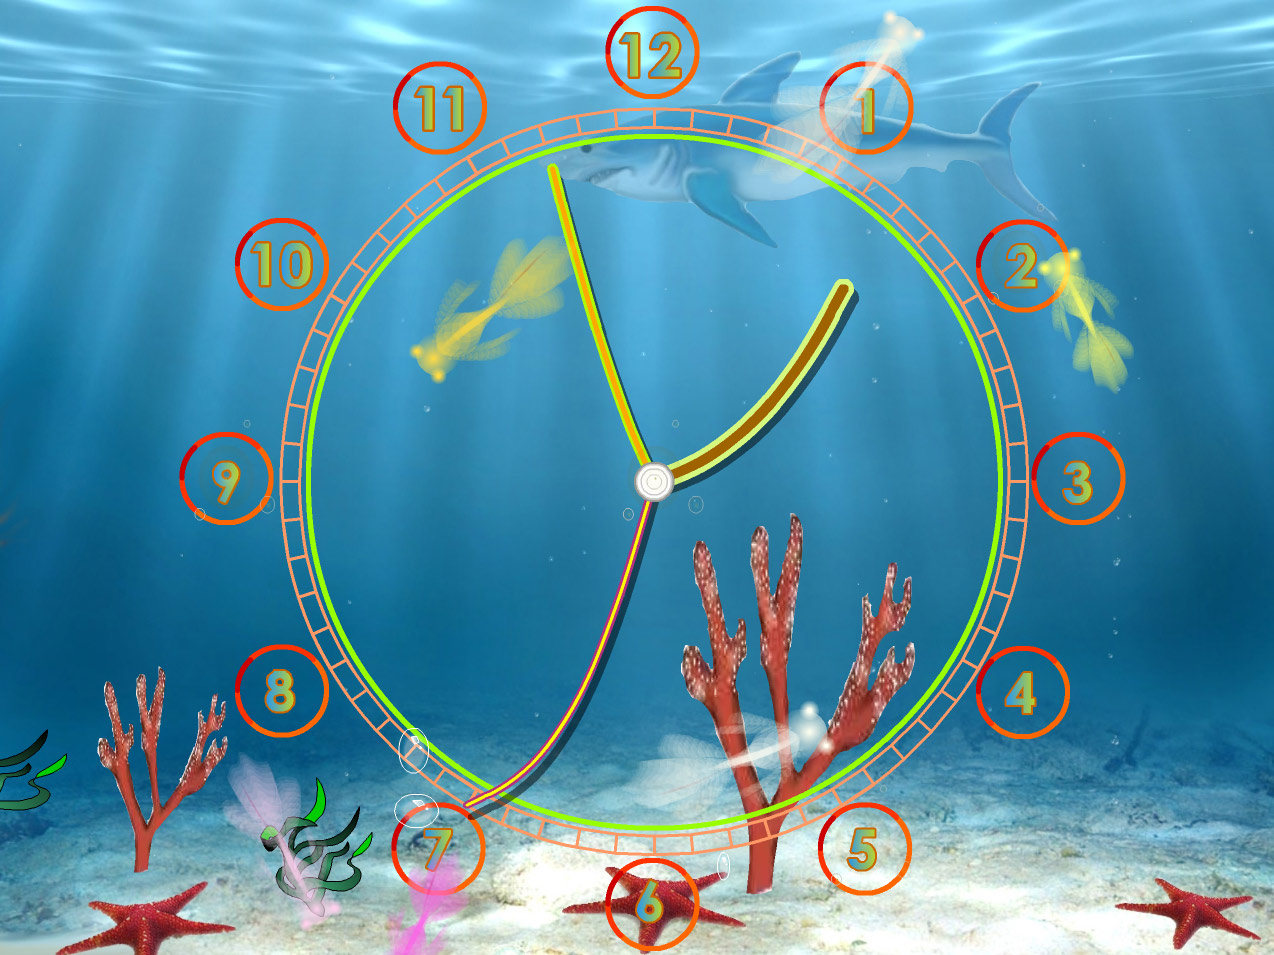 Aquarium Clock screensaver always know the current time with fun 1274x955